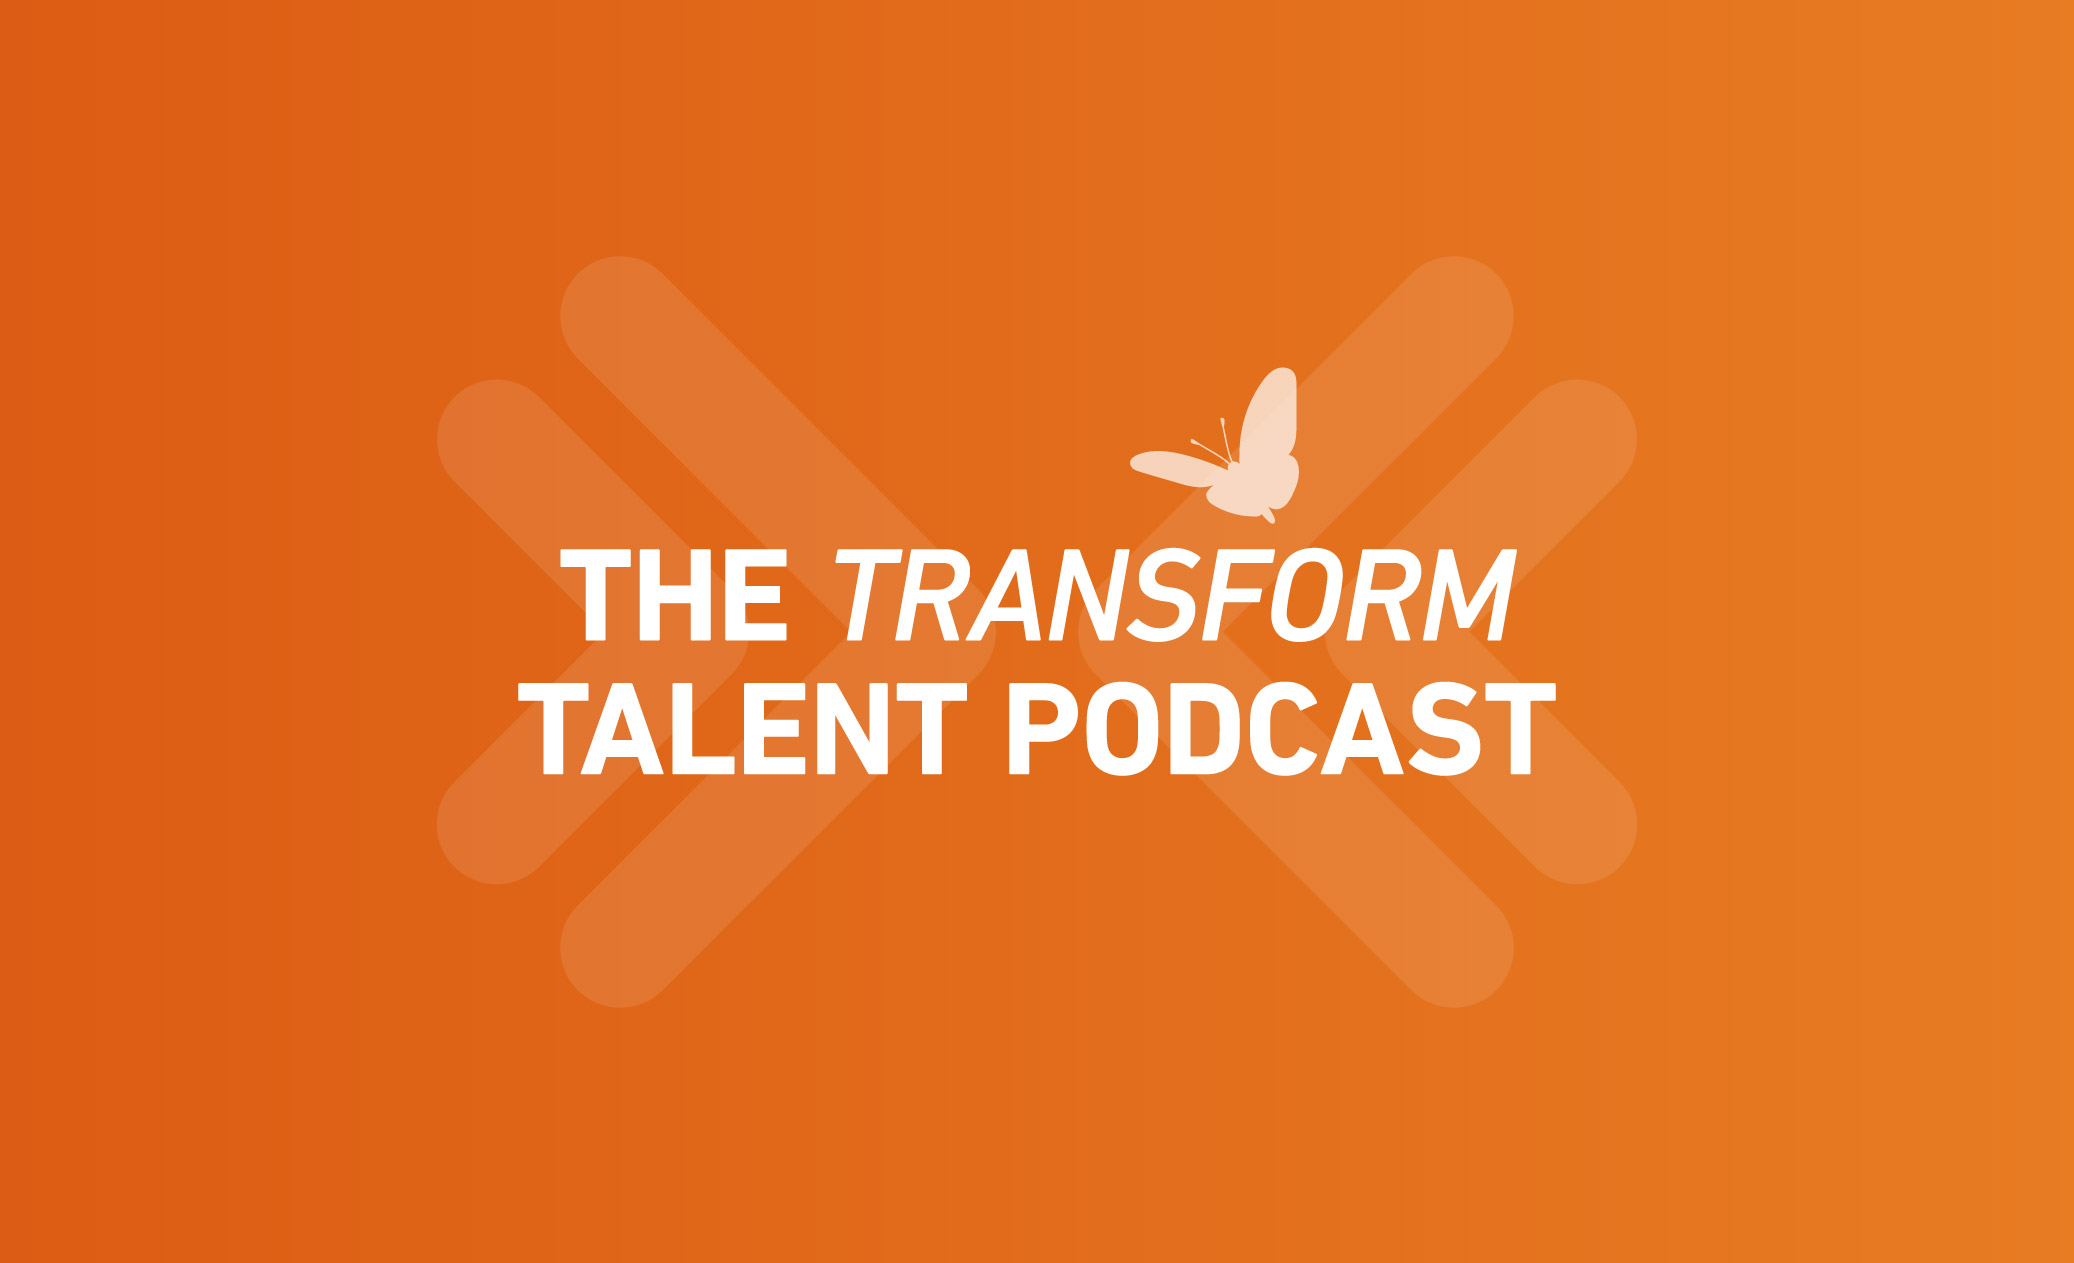 The Transform Talent Podcast